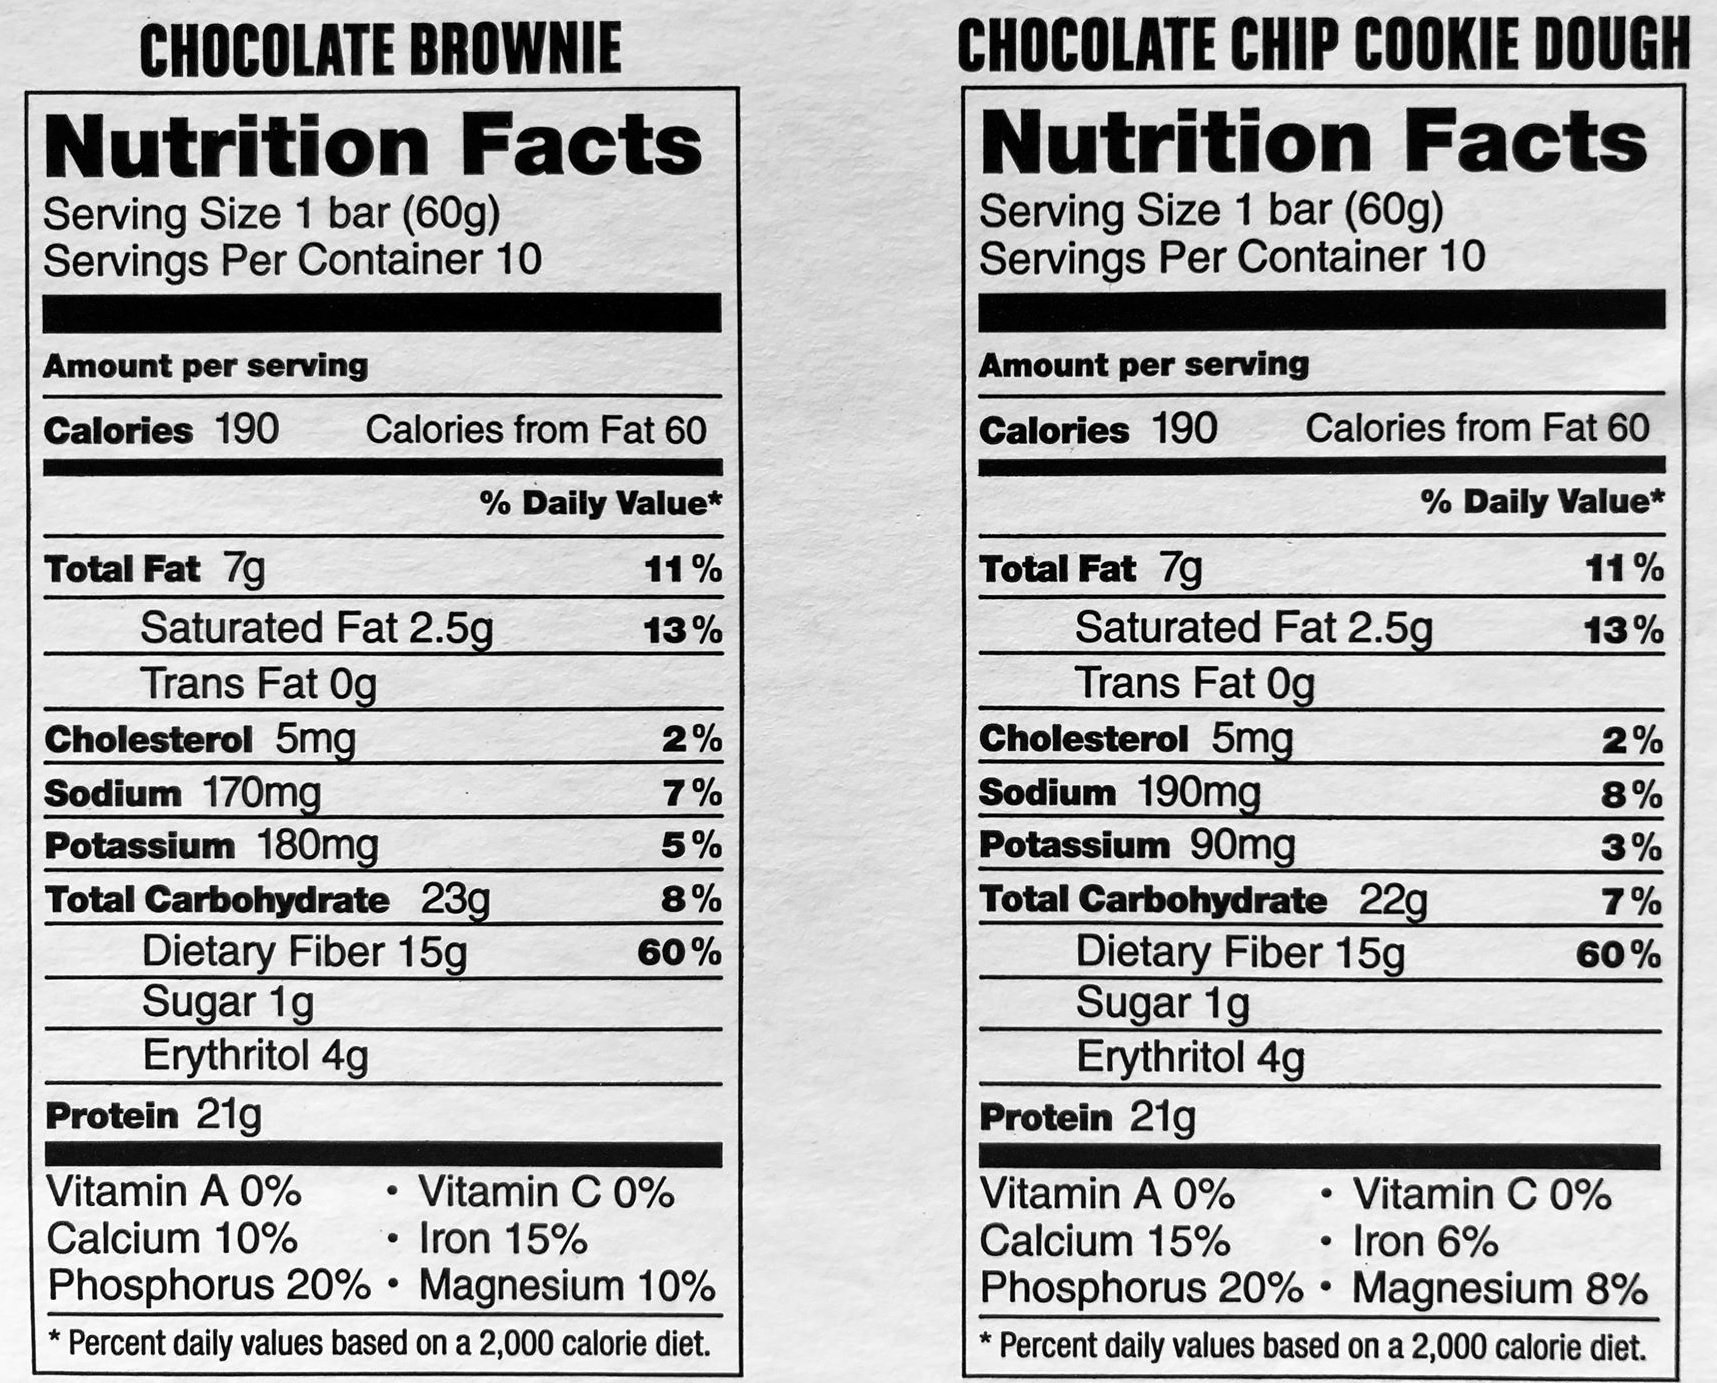 Kirkland | Signature Variety Protein Bars 20 count | 21G Of Protein, 4G Of Carbs & 1G Of Sugar | Chocolate Brownie and Chocolate Chip Cookie Dough (20 Bars) by Kirkland